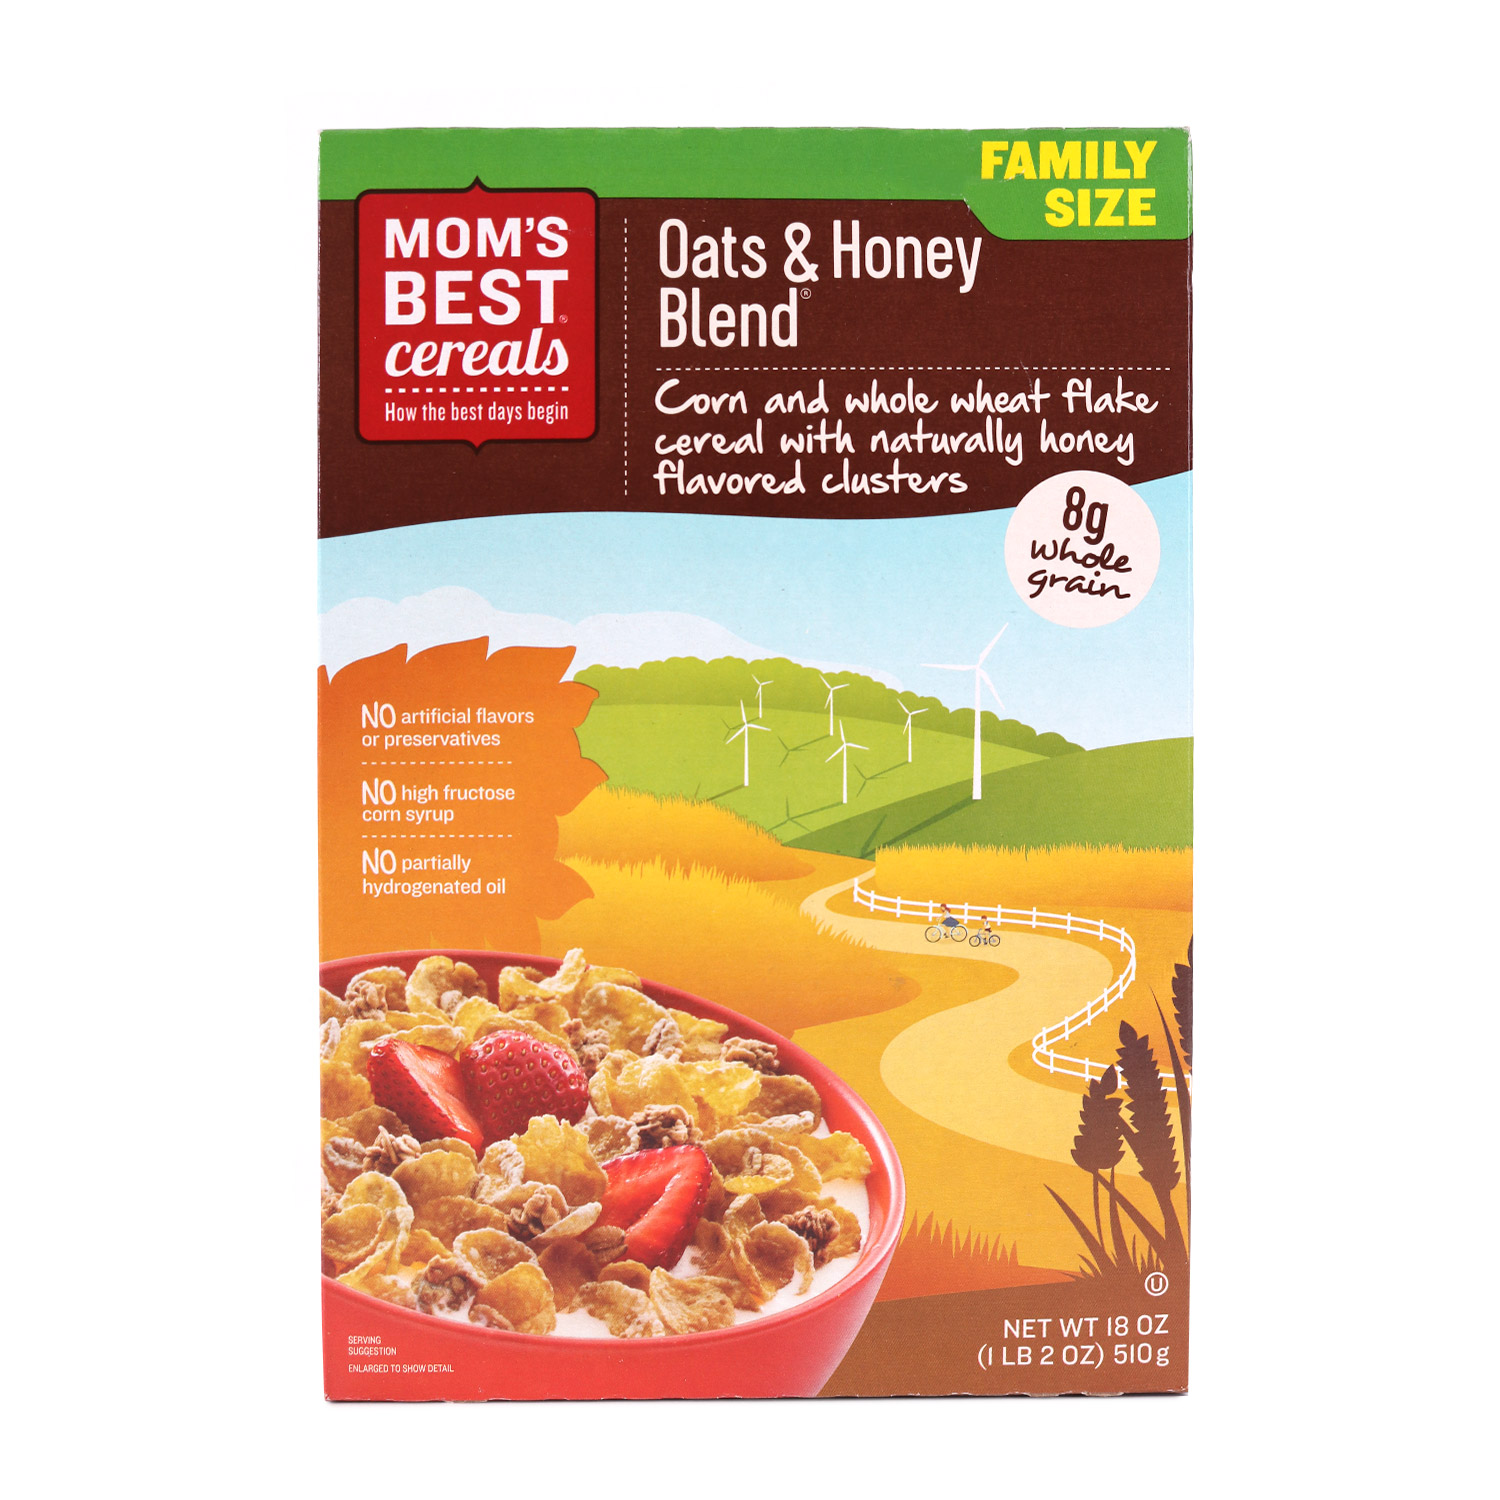 Cereal, Oats & Honey Blend